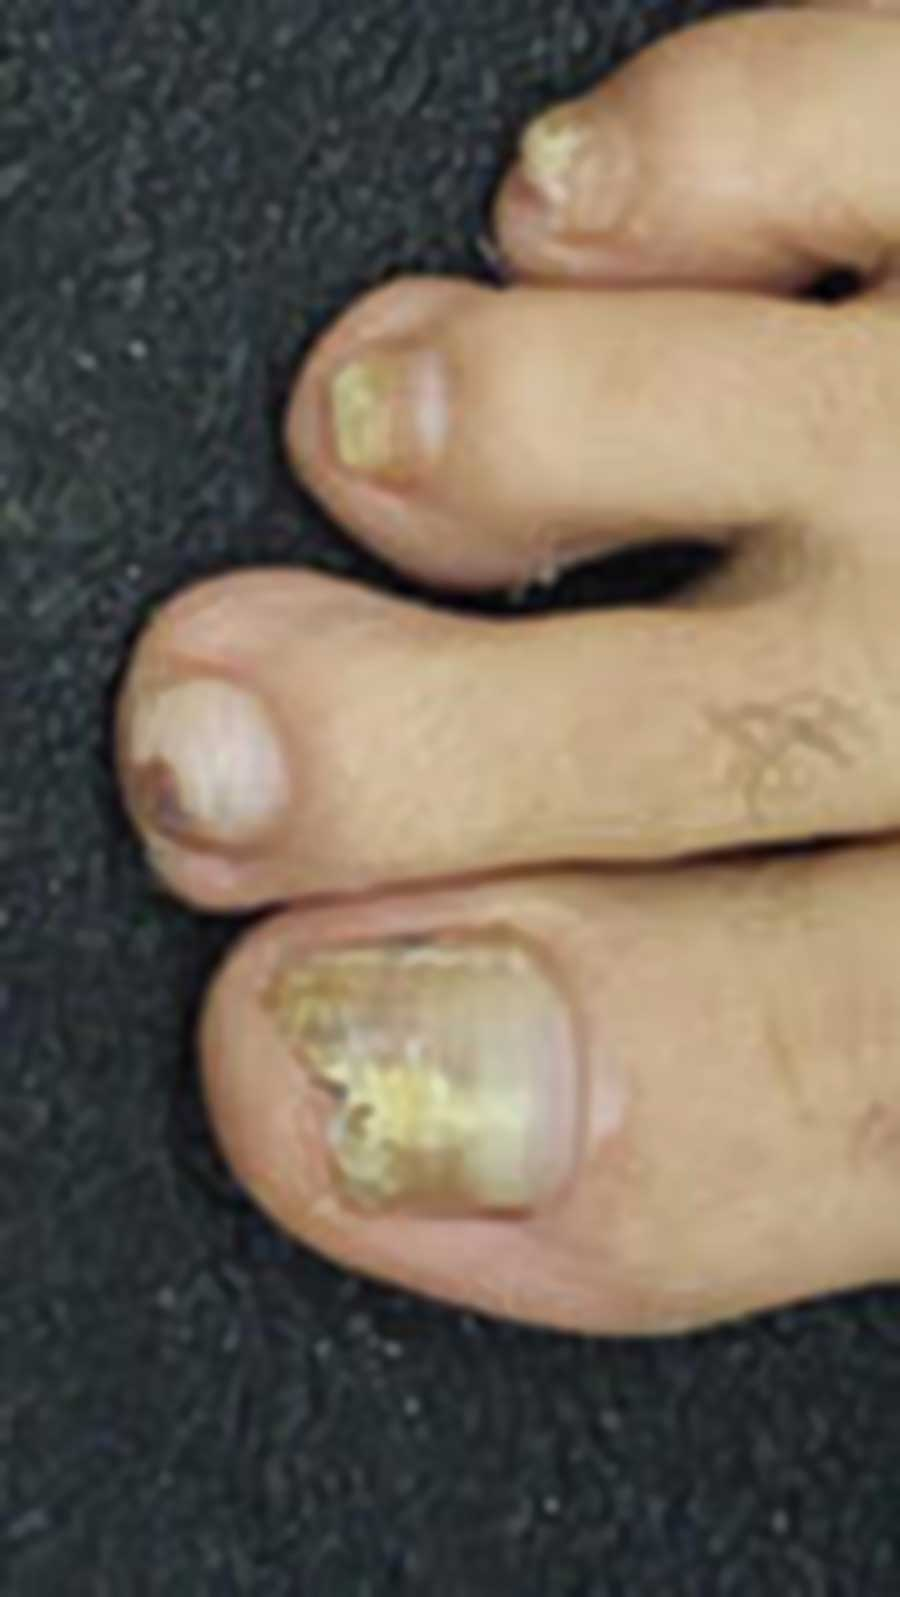 This 48-year-old man mentions that eight of his 10 toenails are yellowed and thickened, with multiple focal areas of breakage on the ends of the nail plates. No changes are noted on his fingernails. The surrounding skin on his feet and hands is within normal limits, except for a rim of faint scaling around the periphery of both feet. The latter is KOH positive for fungal elements image